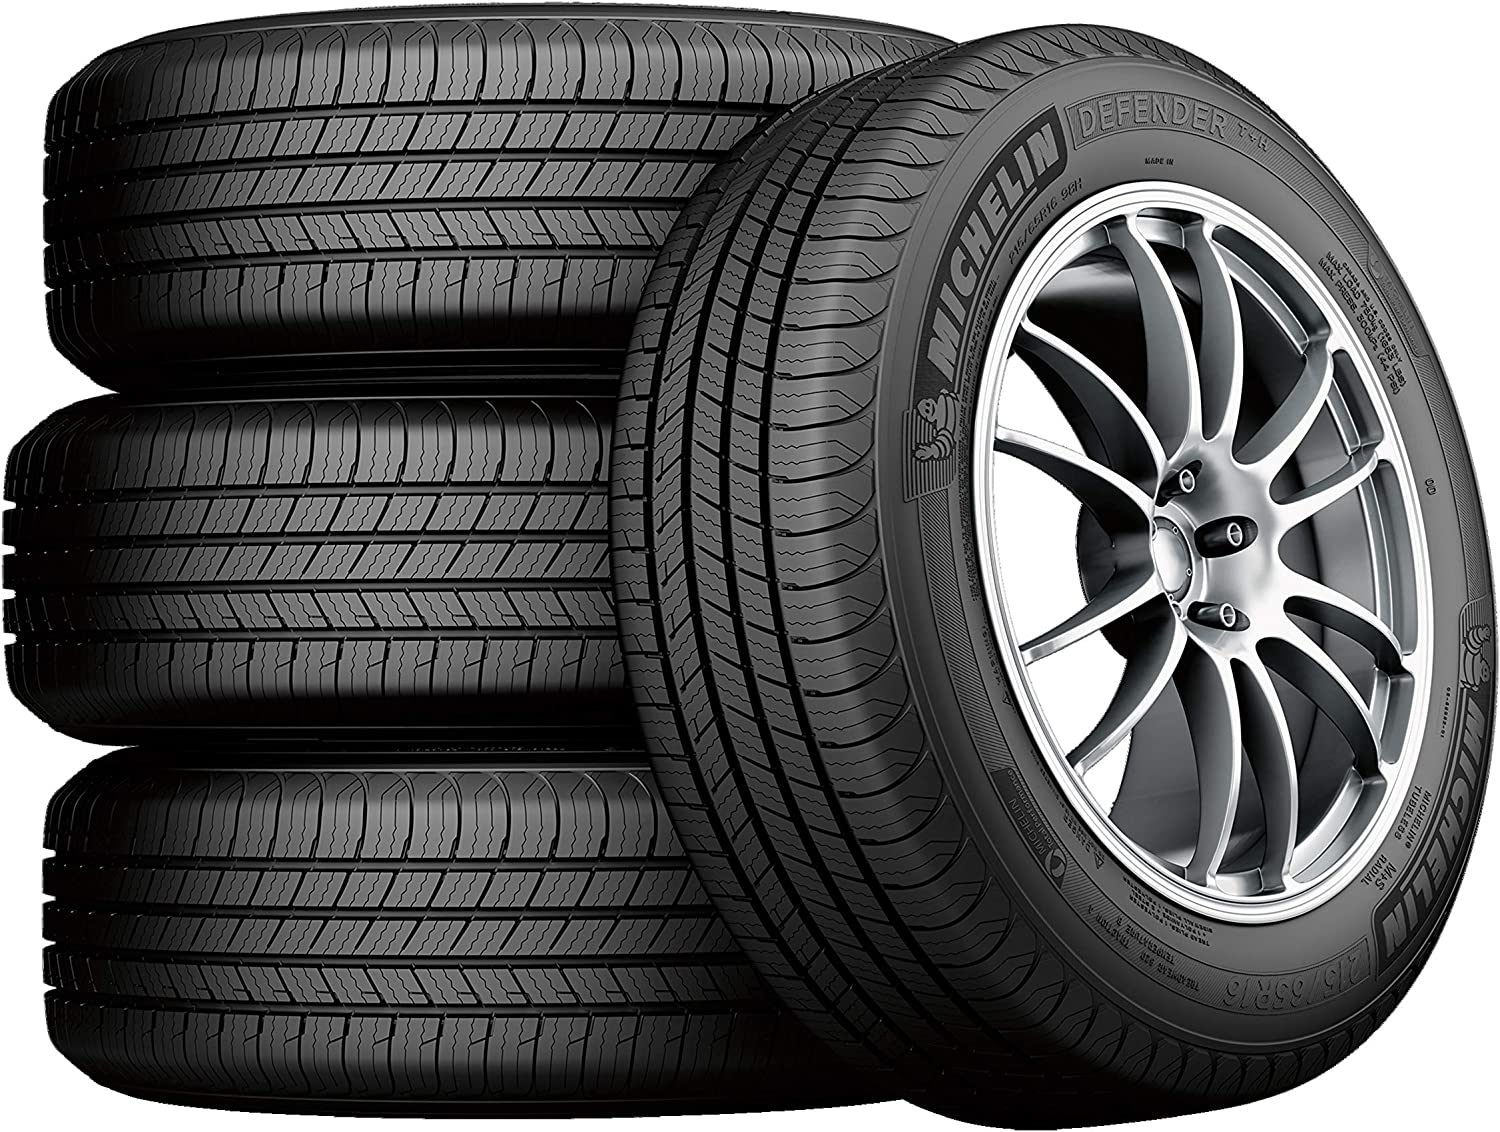 michelin defender review consumer reports